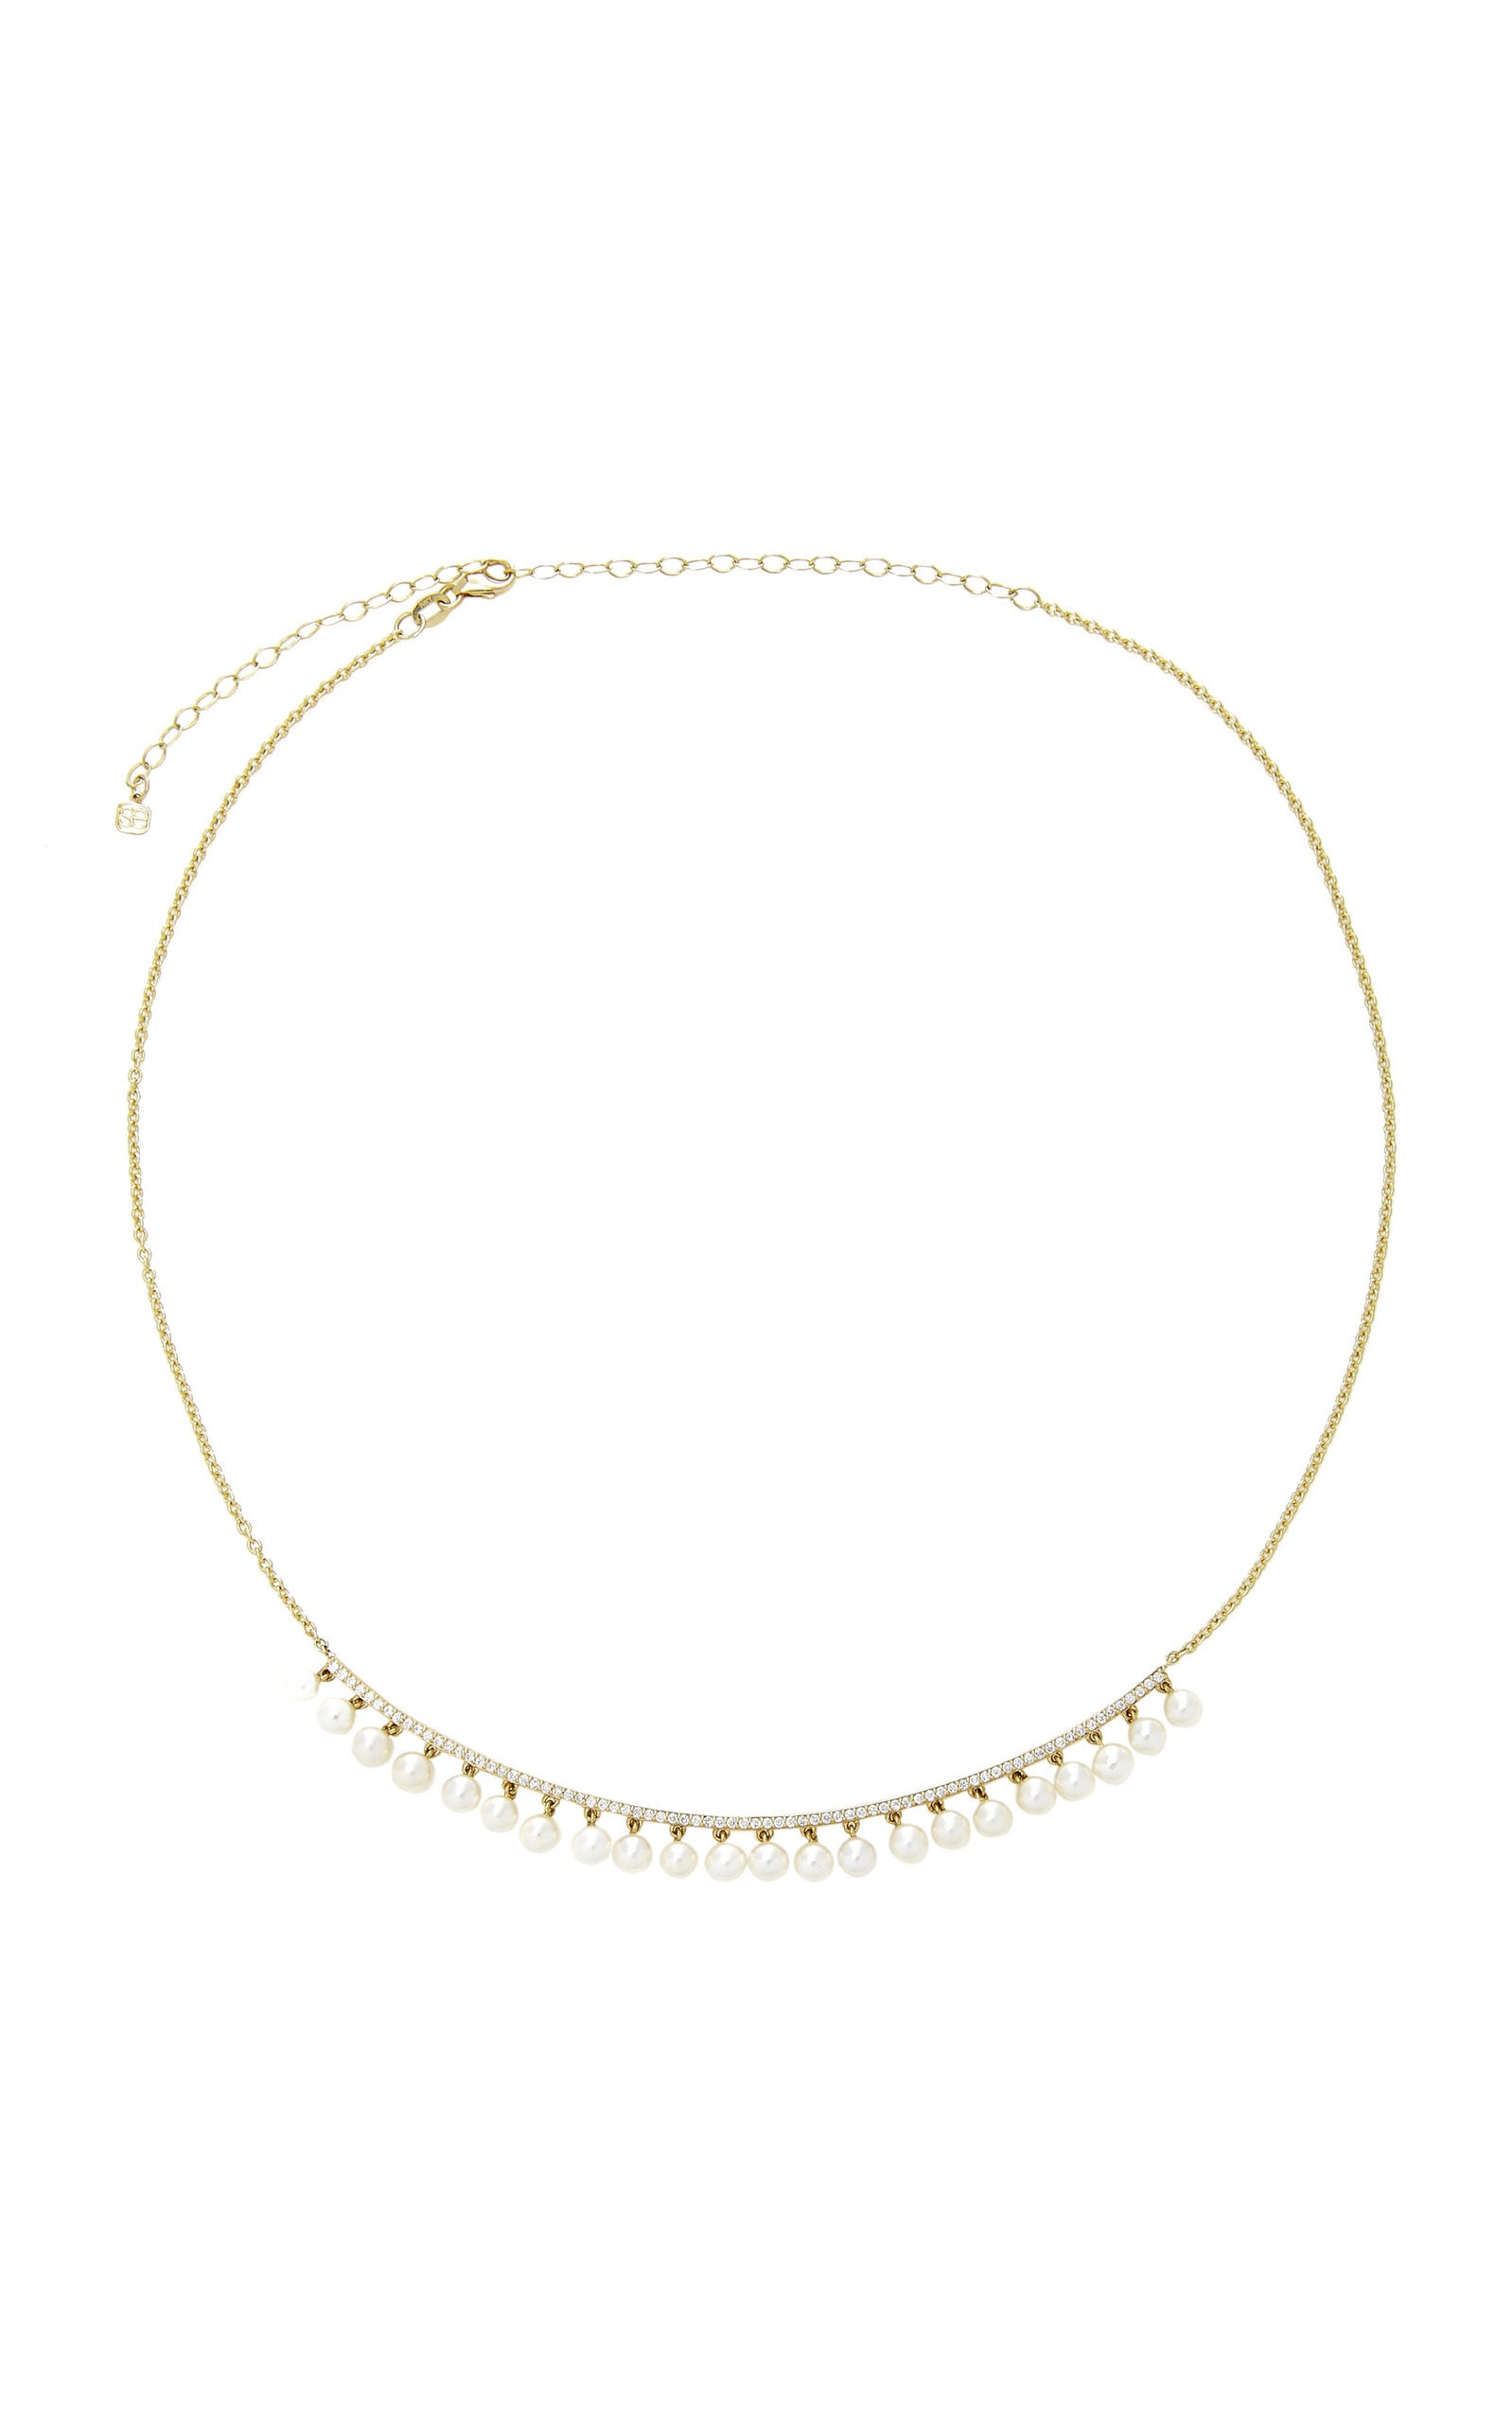 Sydney Evan Pearl Bar Necklace O2SlQjEKP